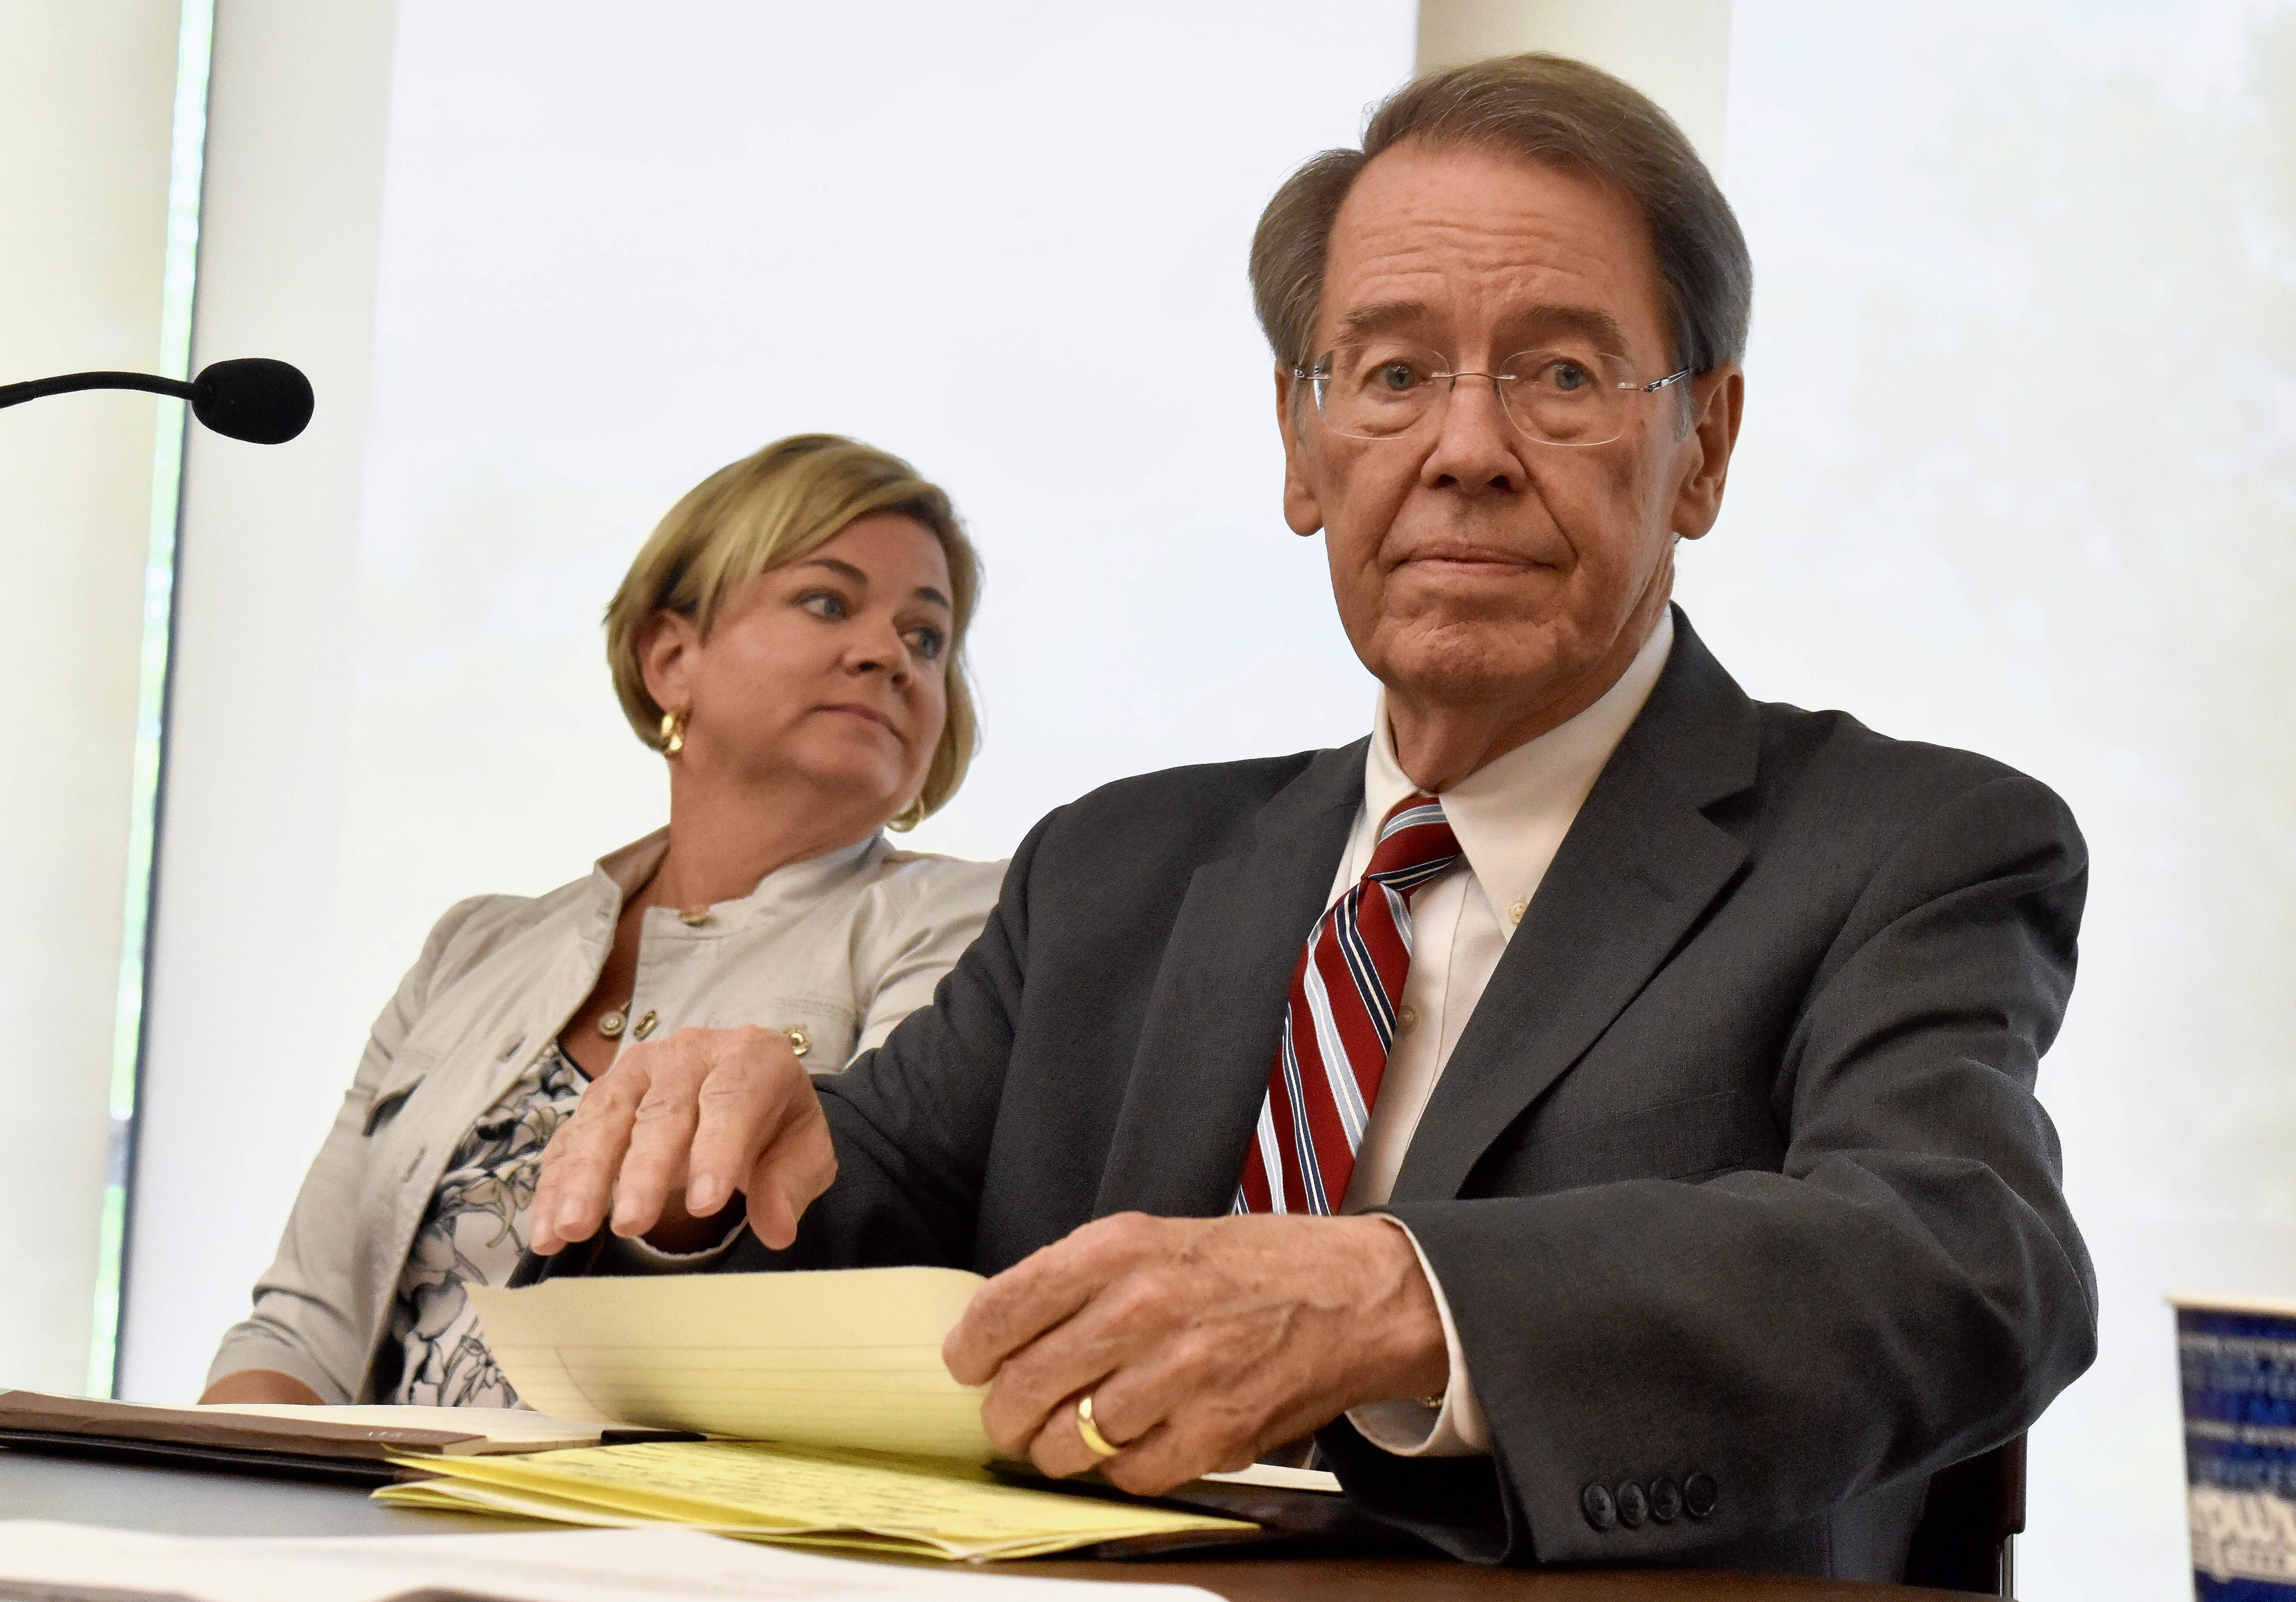 Geoff Ritter photoJ. Kevin Dorsey, who retired in 2015 as the dean and provost of the SIU School of Medicine, is the new president of the SIU system. Shown with him is Amy Sholar, chair of the SIU board of trustees.